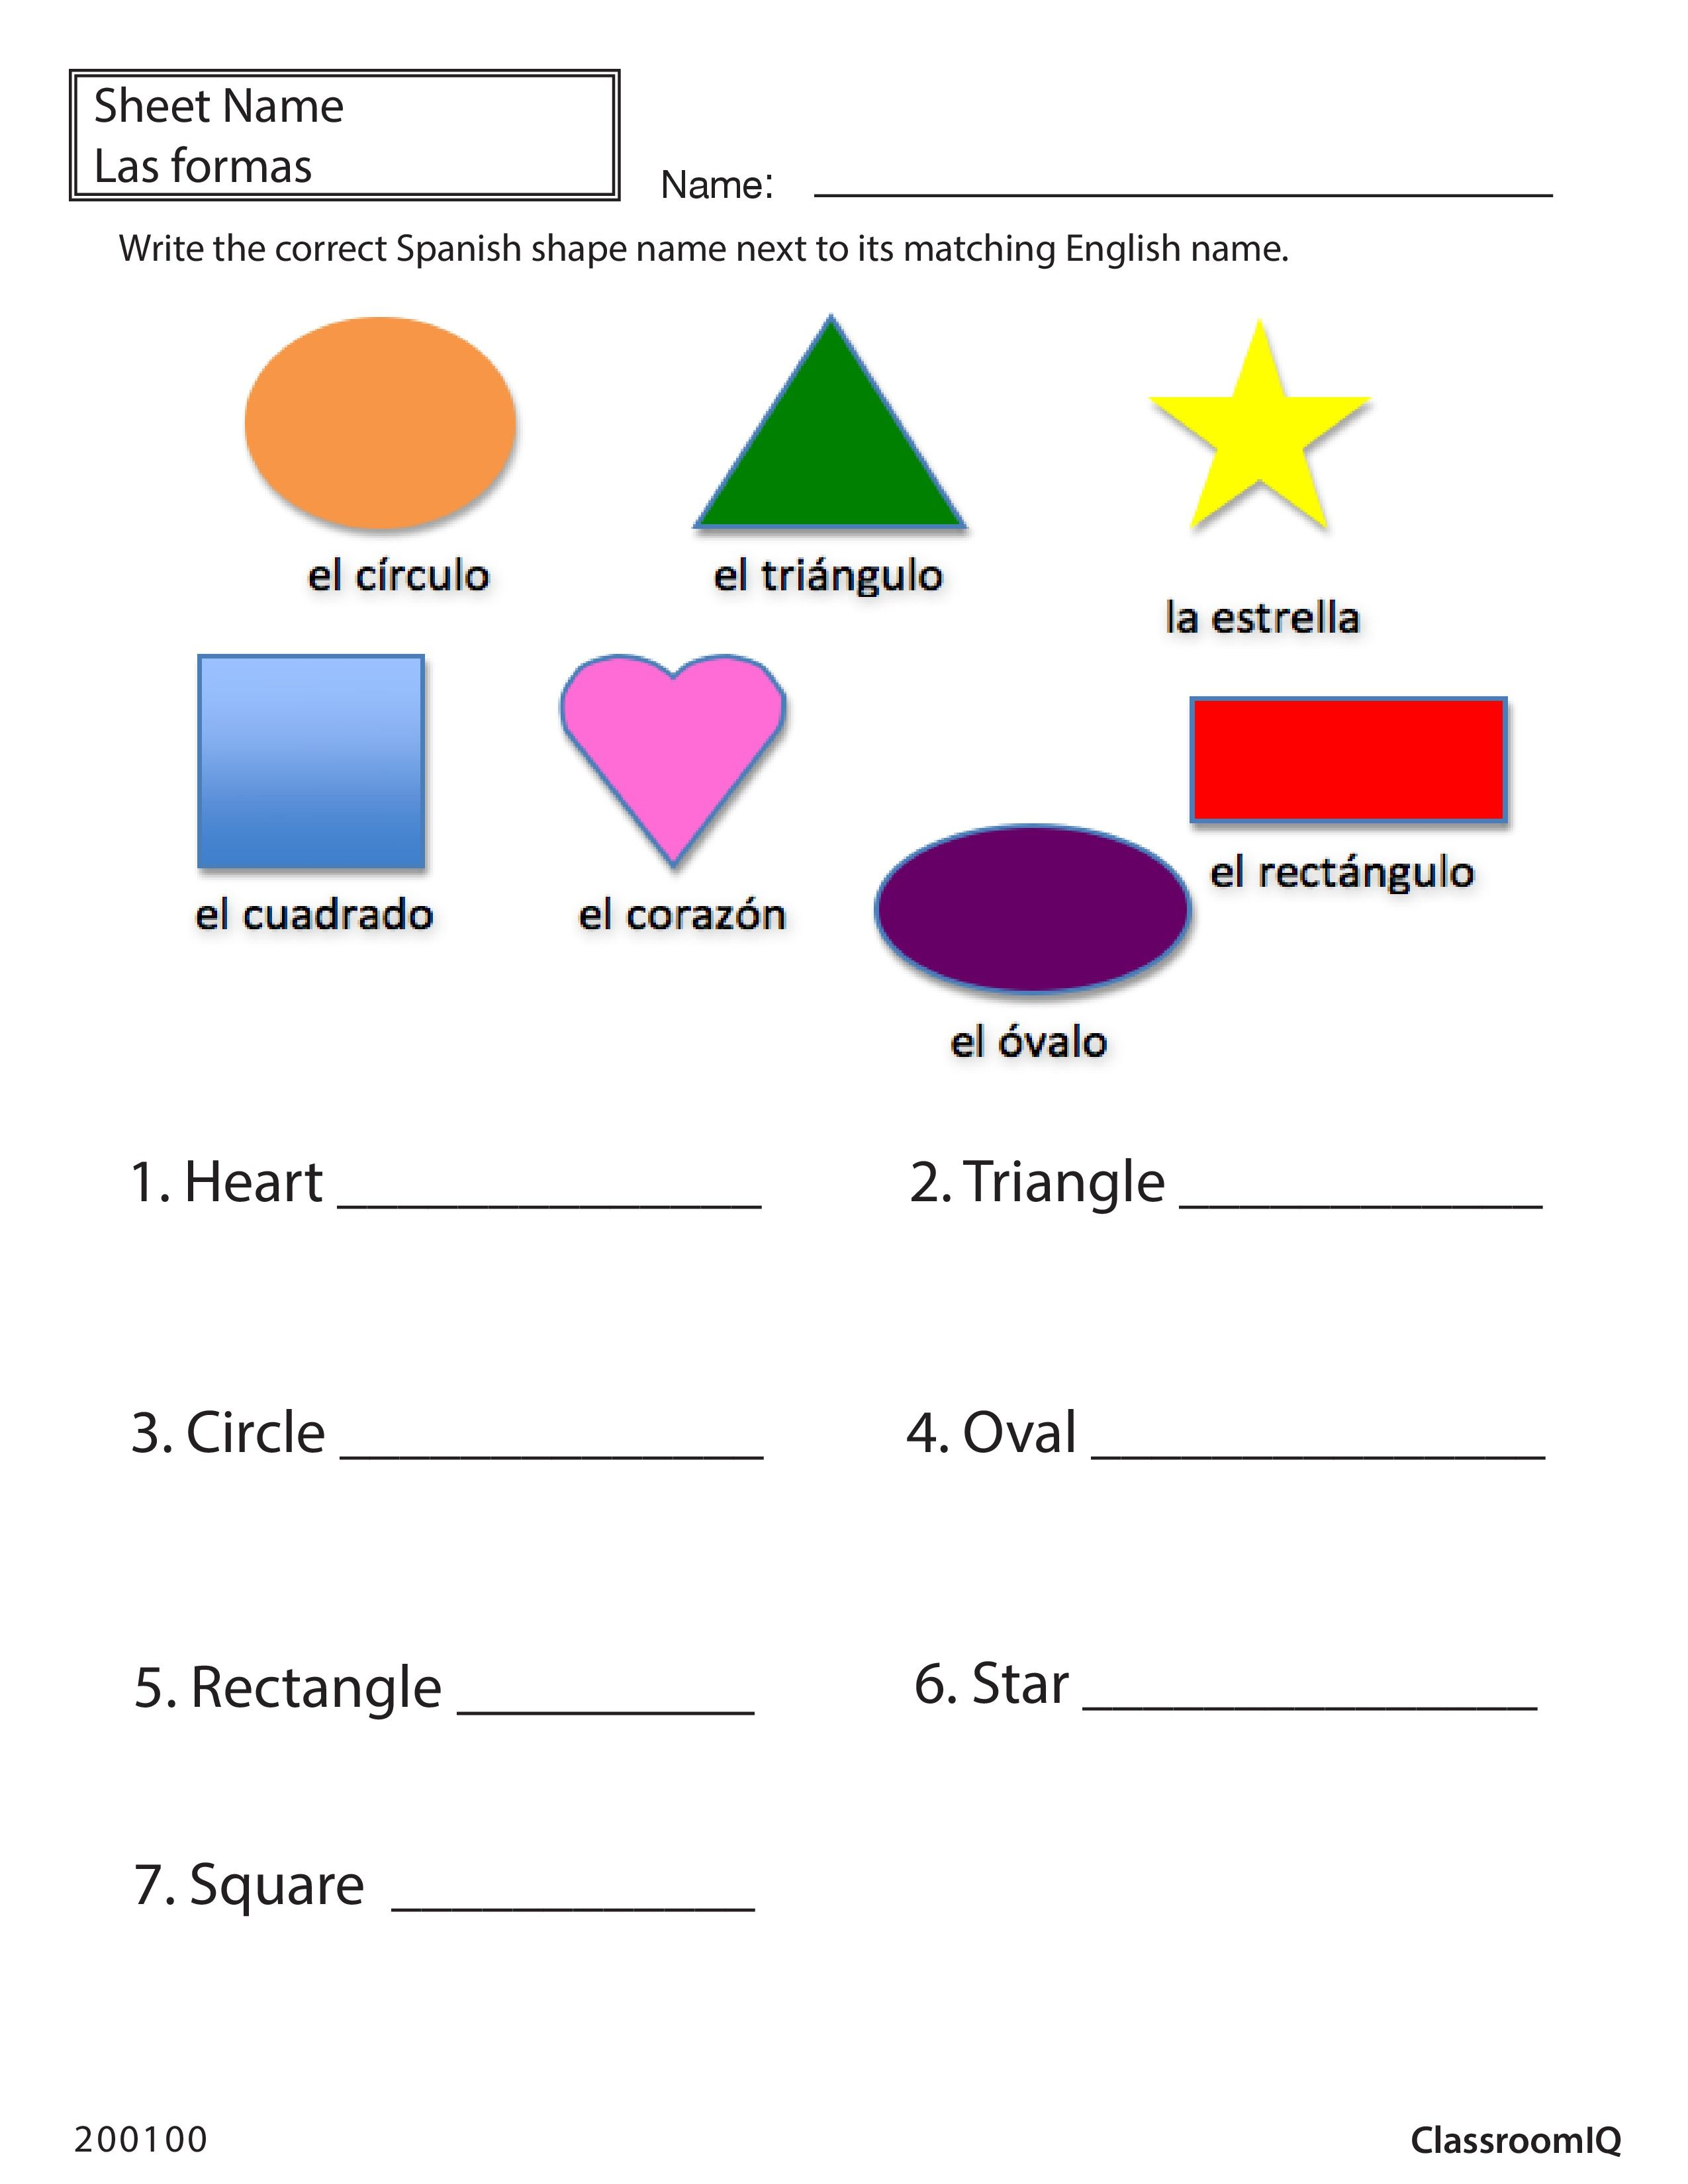 Spanish Shapes Worksheet From Classroomiq With Images Spanish